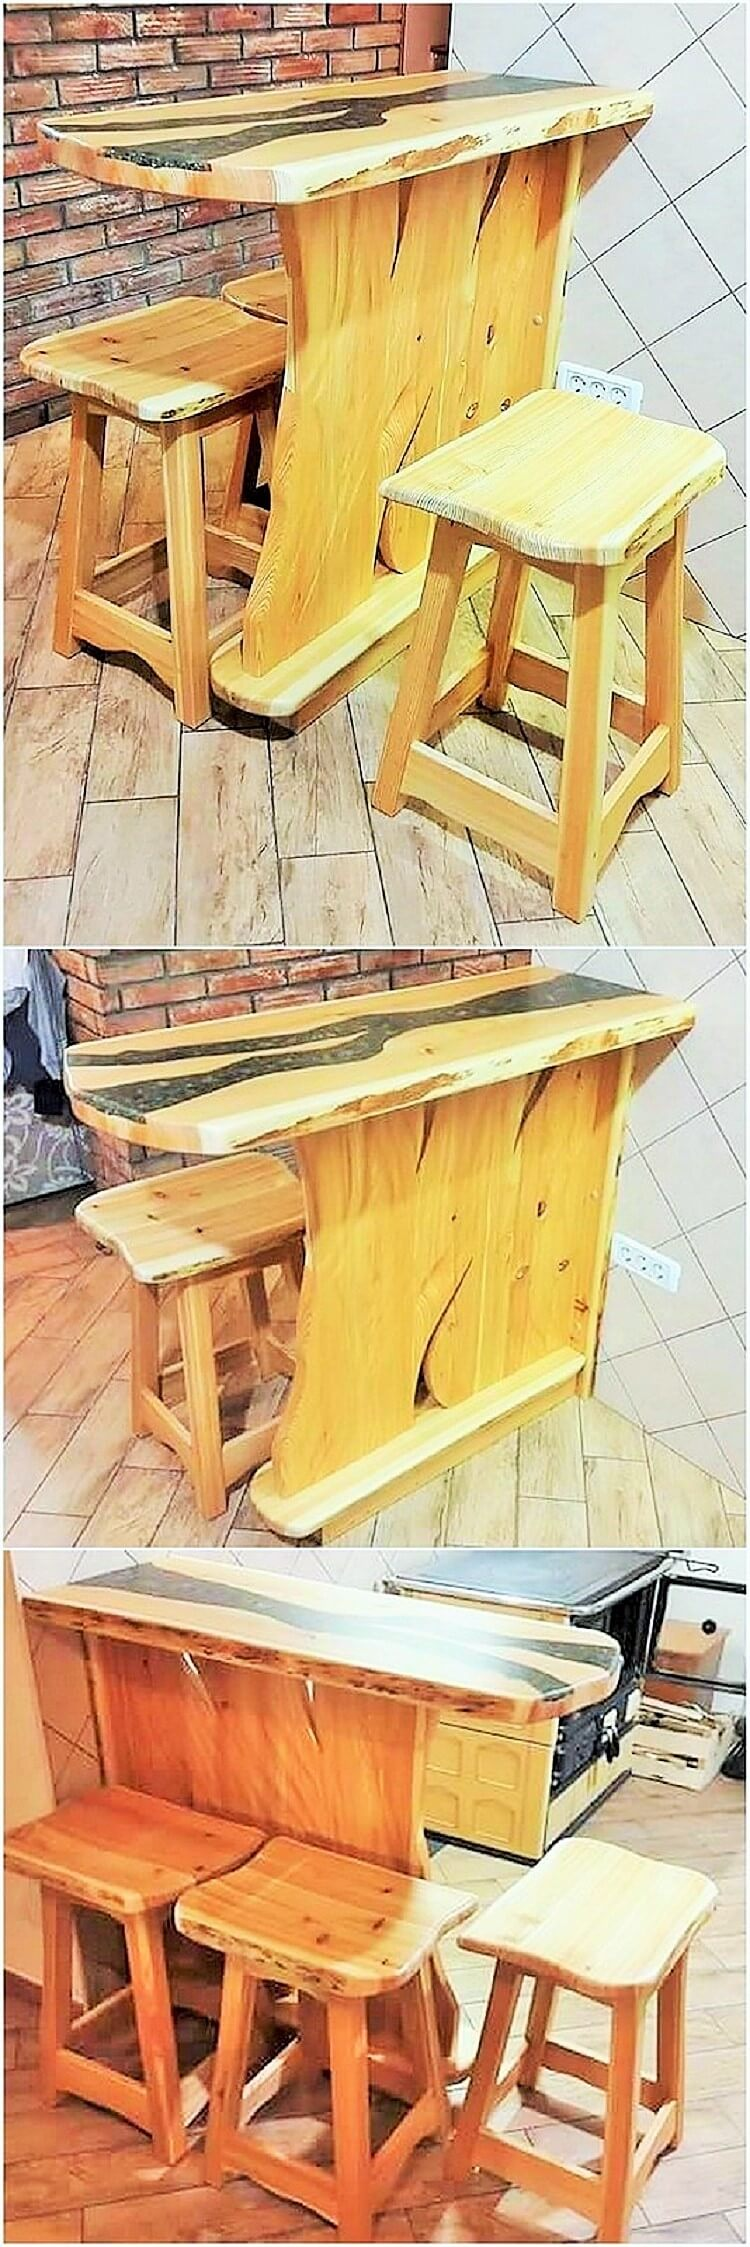 wooden dining banch and table